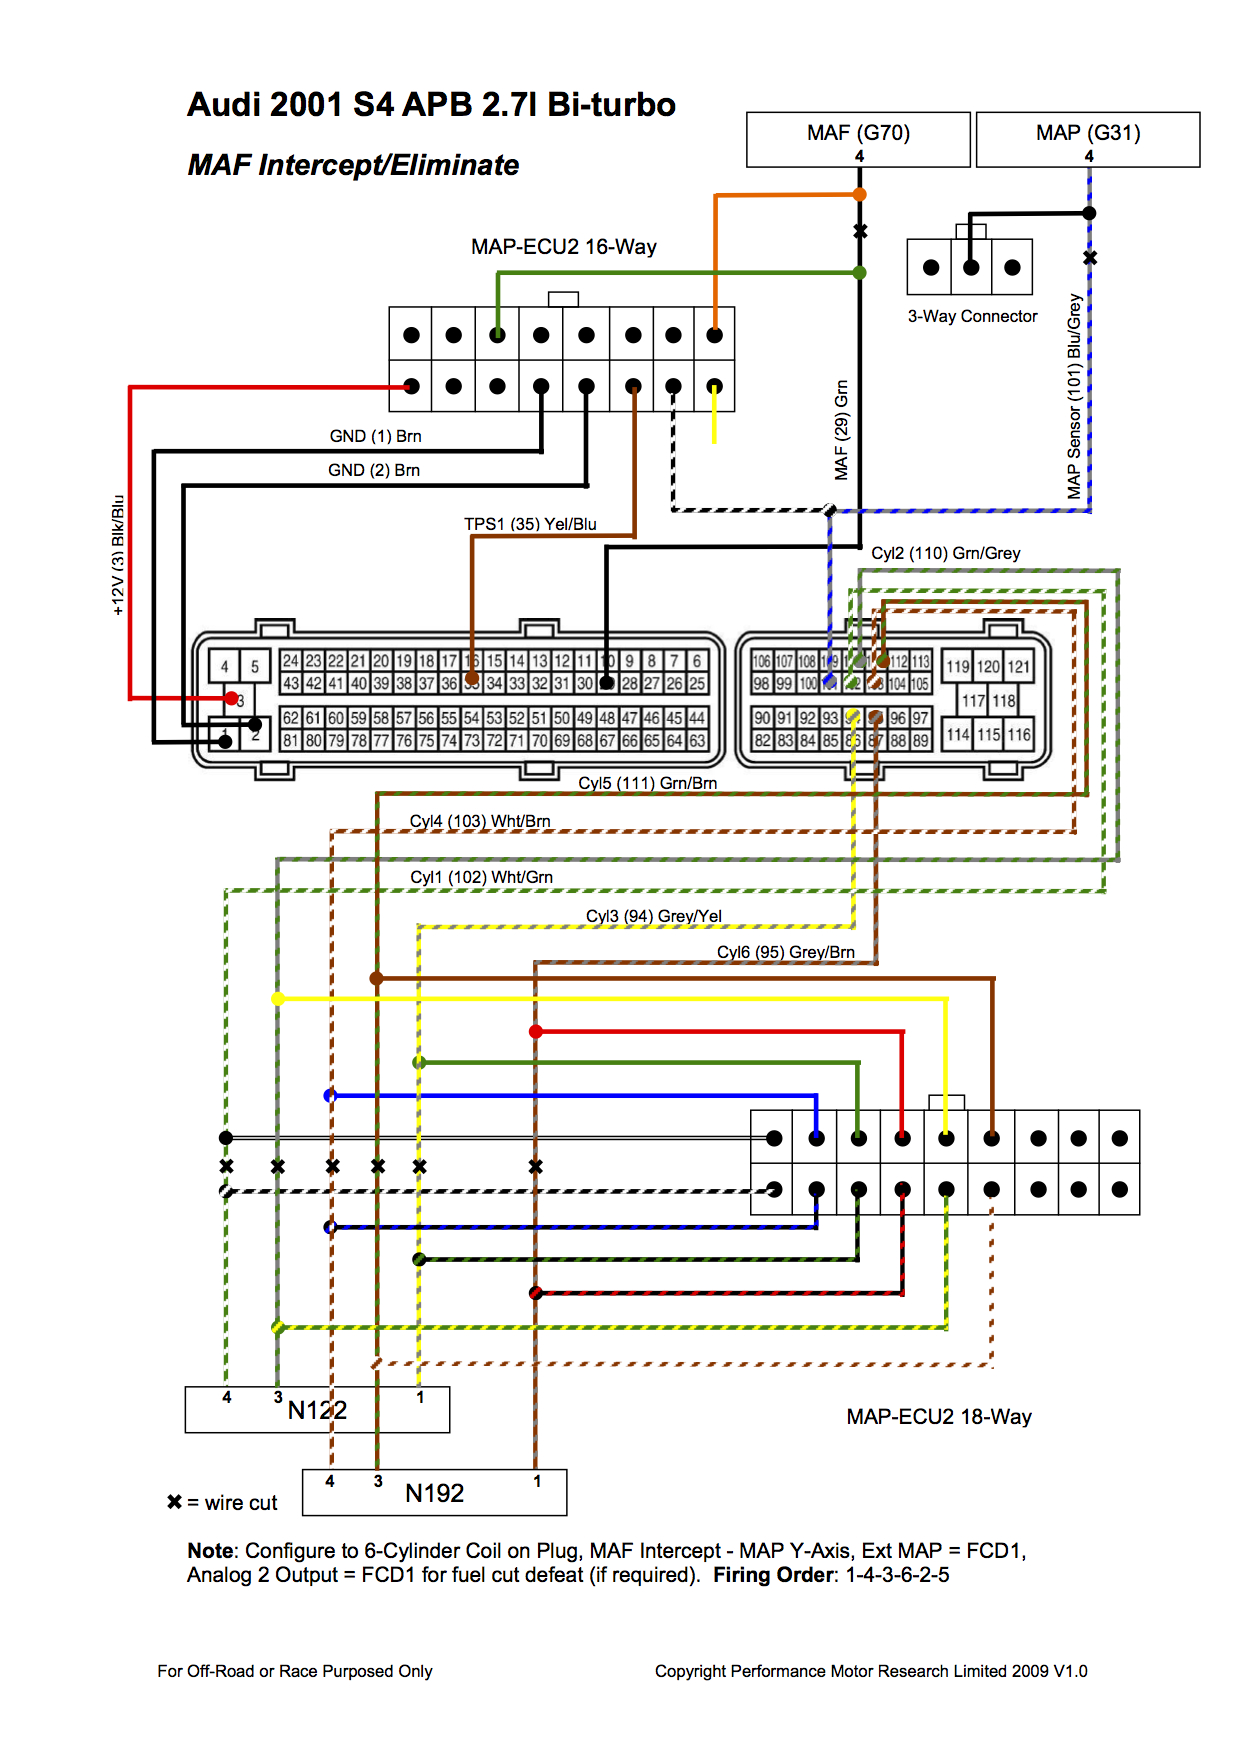 Audi S4 20011 2007 camry jbl stereo wiring diagram 2007 camry relay location  at creativeand.co